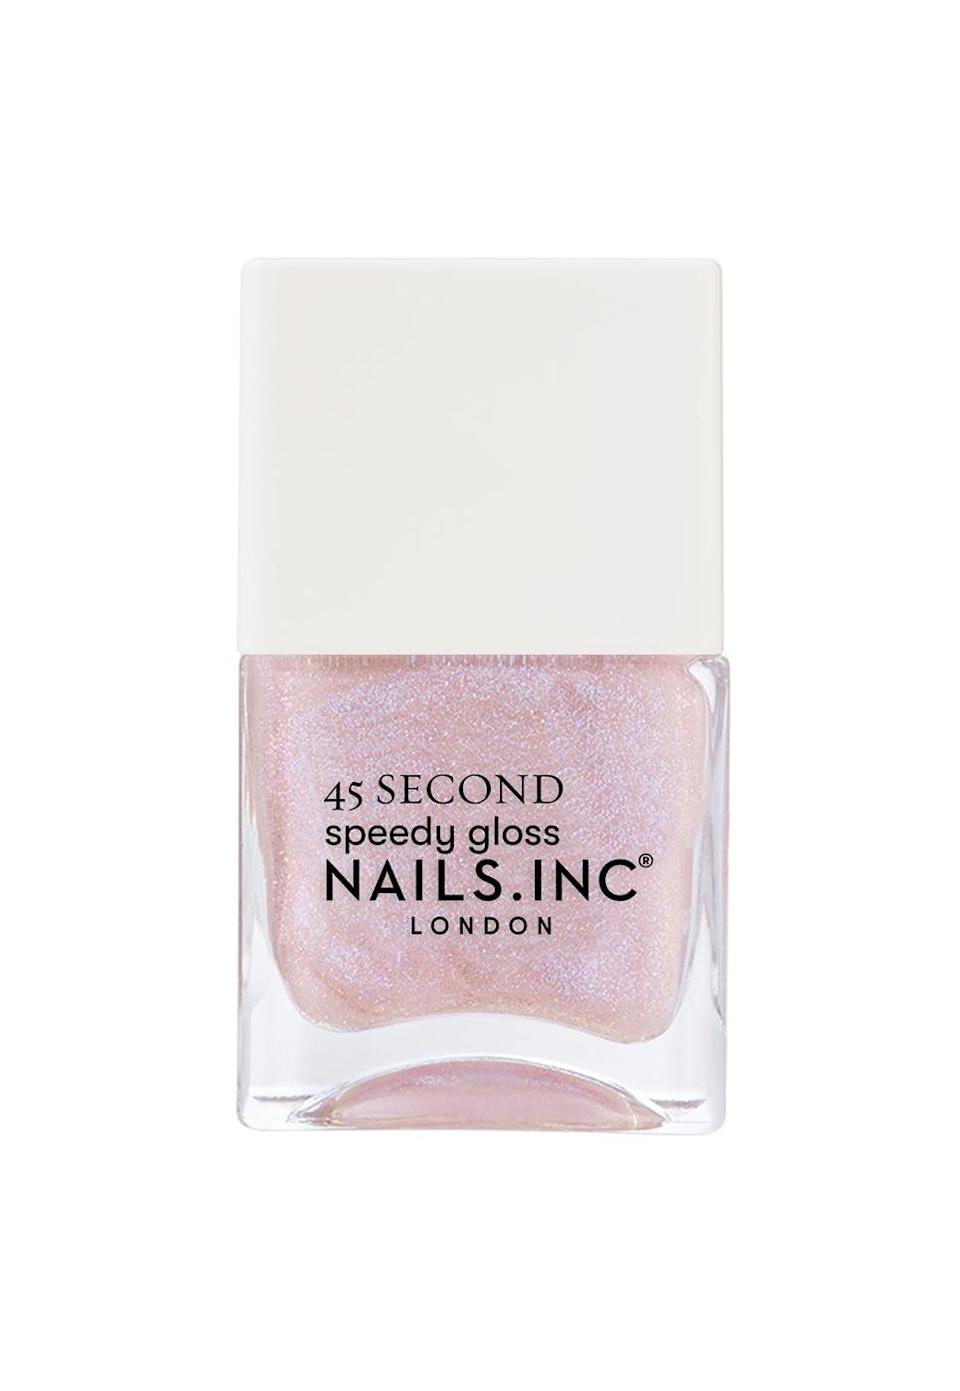 """<p>Glittery light pink is the best color for your nails to boast this month, as it'll bring out your innermost tender sentiments for the world to see. While you often shy away from letting others know your feels, now is the time to let your gentle emotions take center stage.</p> <p>To shop: $8, <a href=""""https://www.nailsinc.com/en/Starring-Me-In-Soho-Quick-Drying-Nail-Polish/m-2677.aspx"""" rel=""""sponsored noopener"""" target=""""_blank"""" data-ylk=""""slk:nailsinc.com"""" class=""""link rapid-noclick-resp"""">nailsinc.com</a></p>"""